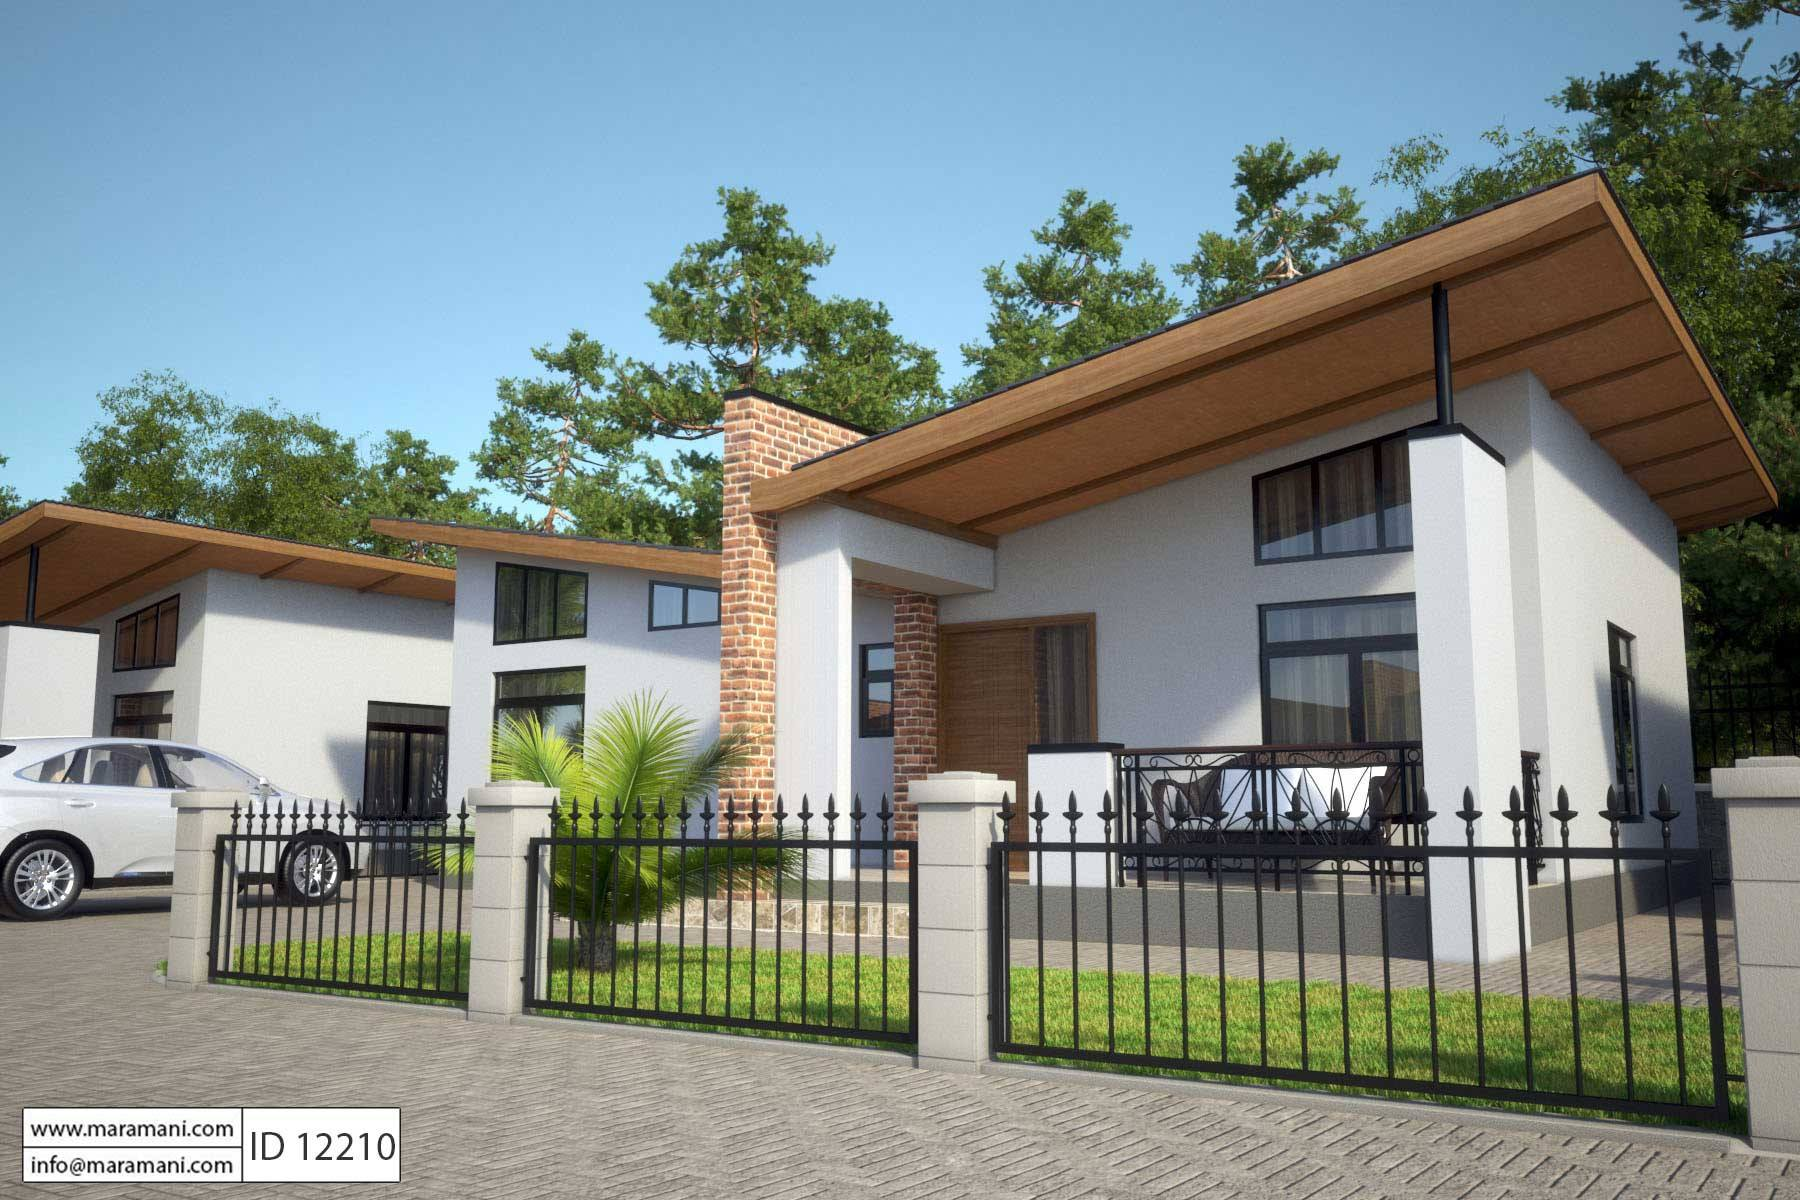 2 bedroom house plan id 12210 house designs by maramani for Building a one room house